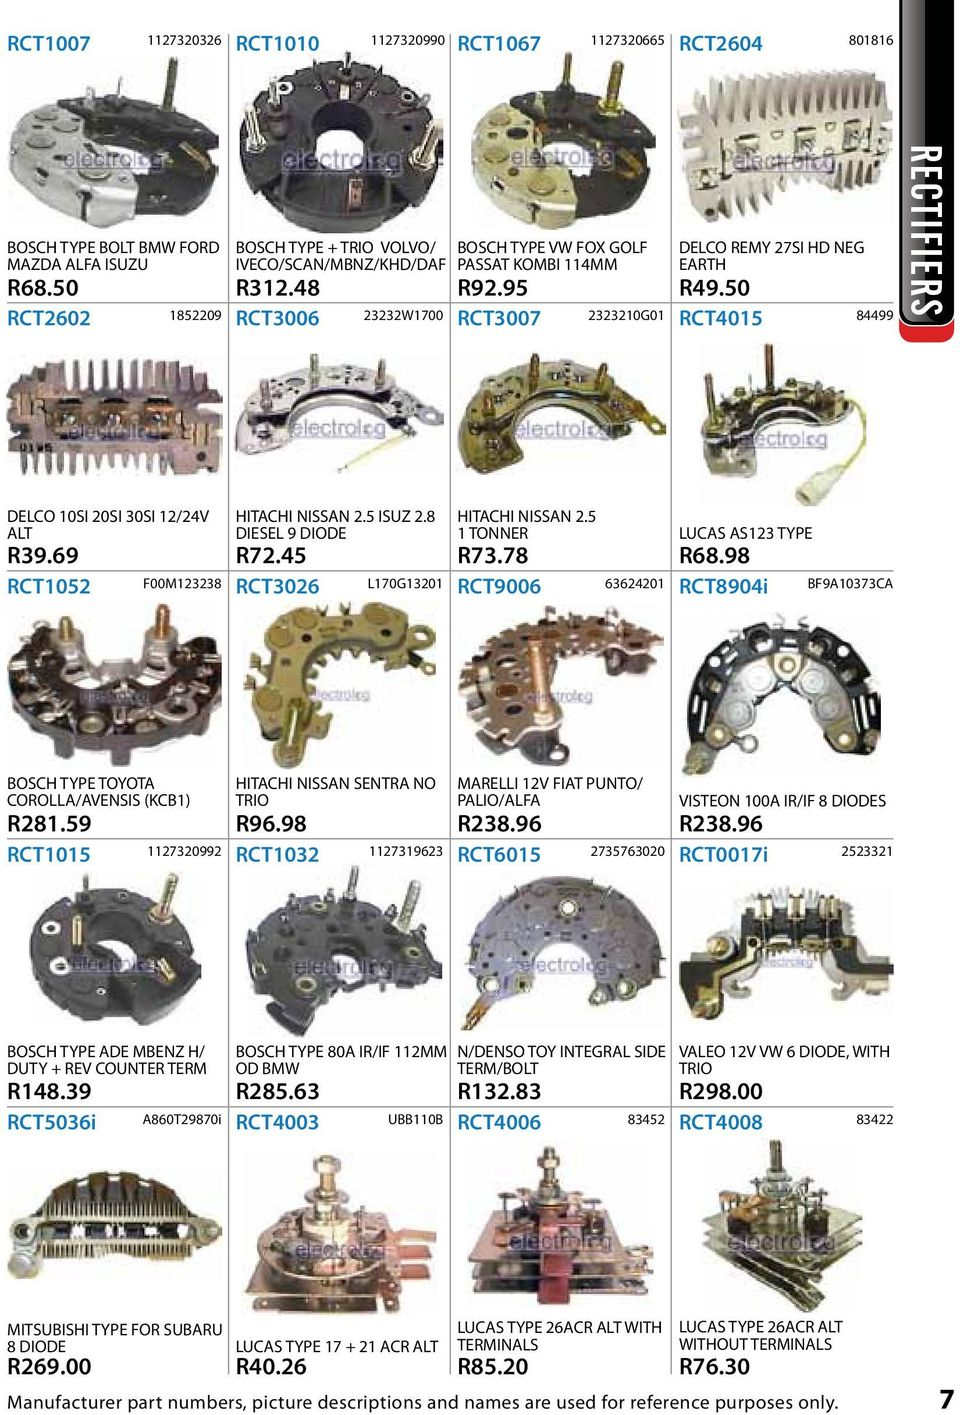 Offers R Each R1 December January Str1068i I Bosch Type 27si Delco Remy Alternator Wiring Diagram 69 Rct1052 F00m123238 Hitachi Nissan 25 Isuz 28 Diesel 9 Diode R7245 Rct3026 L170g13201